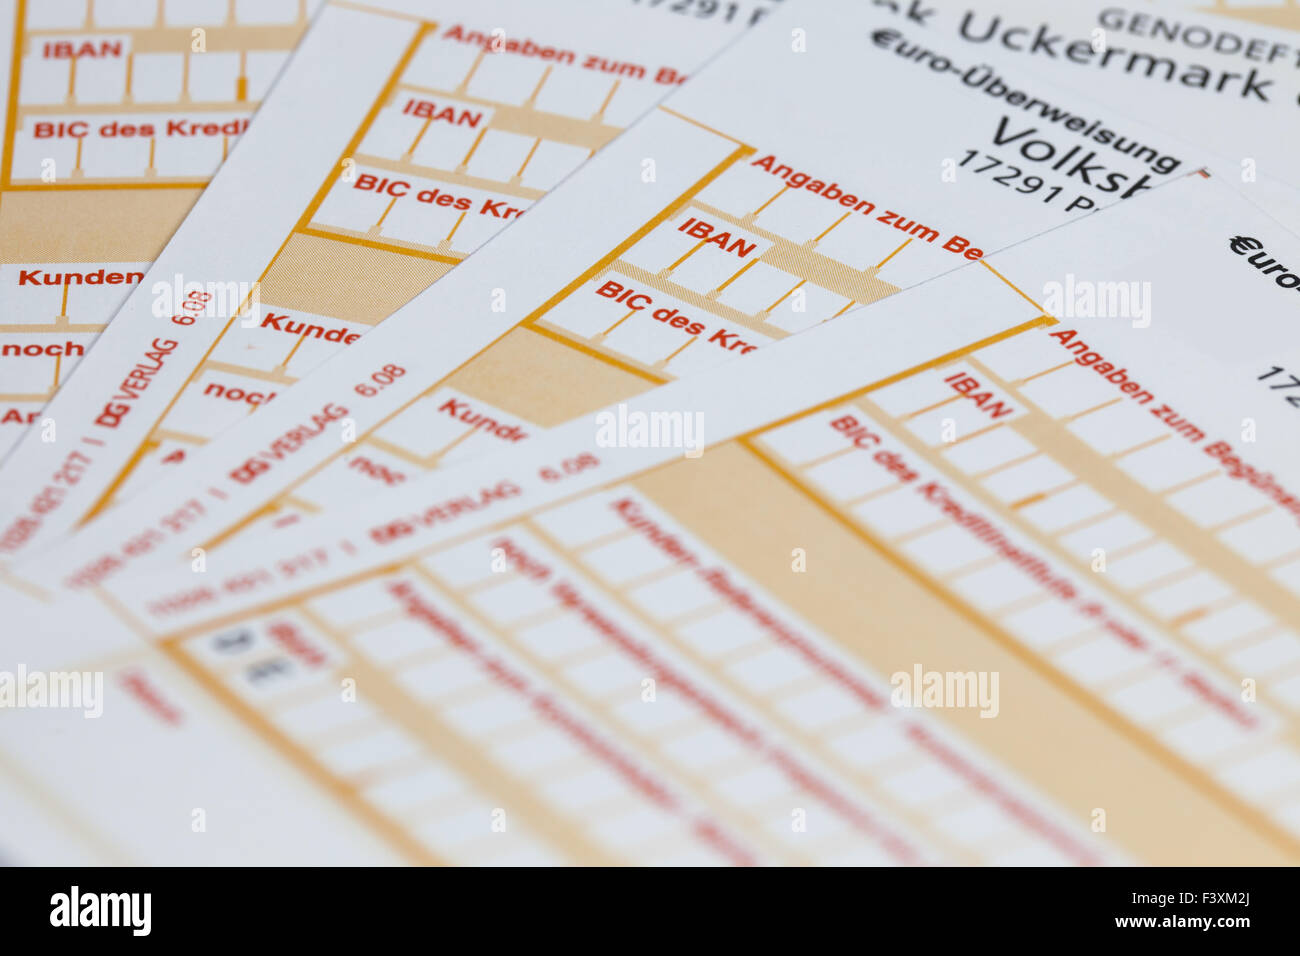 IBAN Transfer form Stock Photo, Royalty Free Image: 88482314 - Alamy